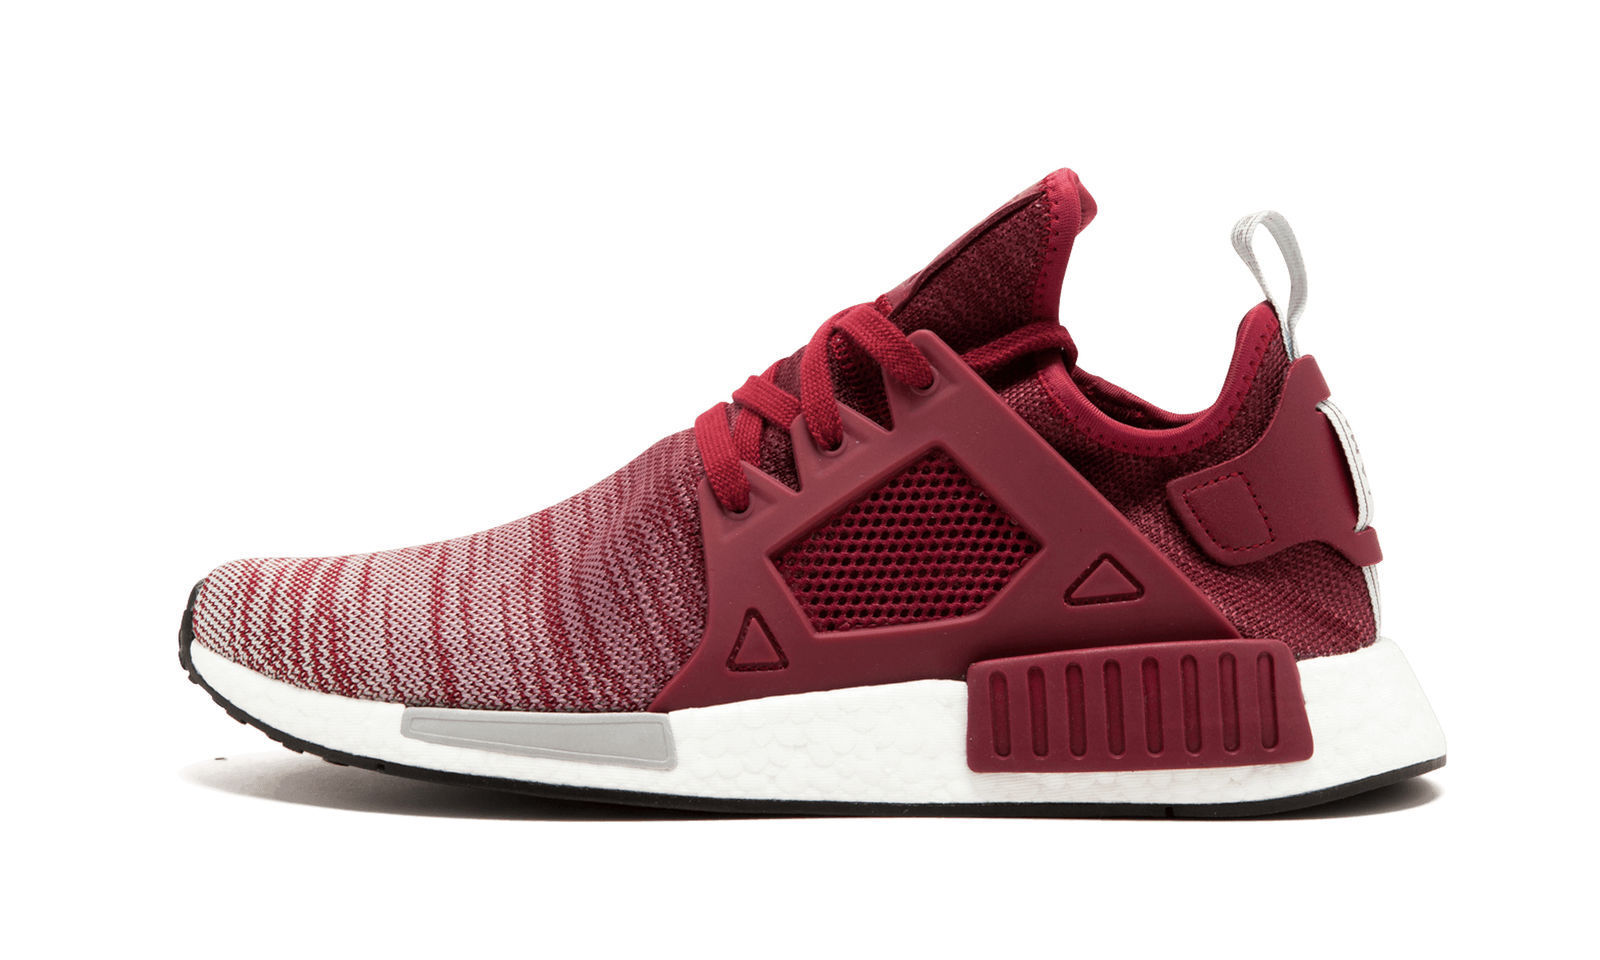 Adidas NMD XR1 Maroon Gradient size 11.5. BB6857 JD Sports Exclusive ultra boost